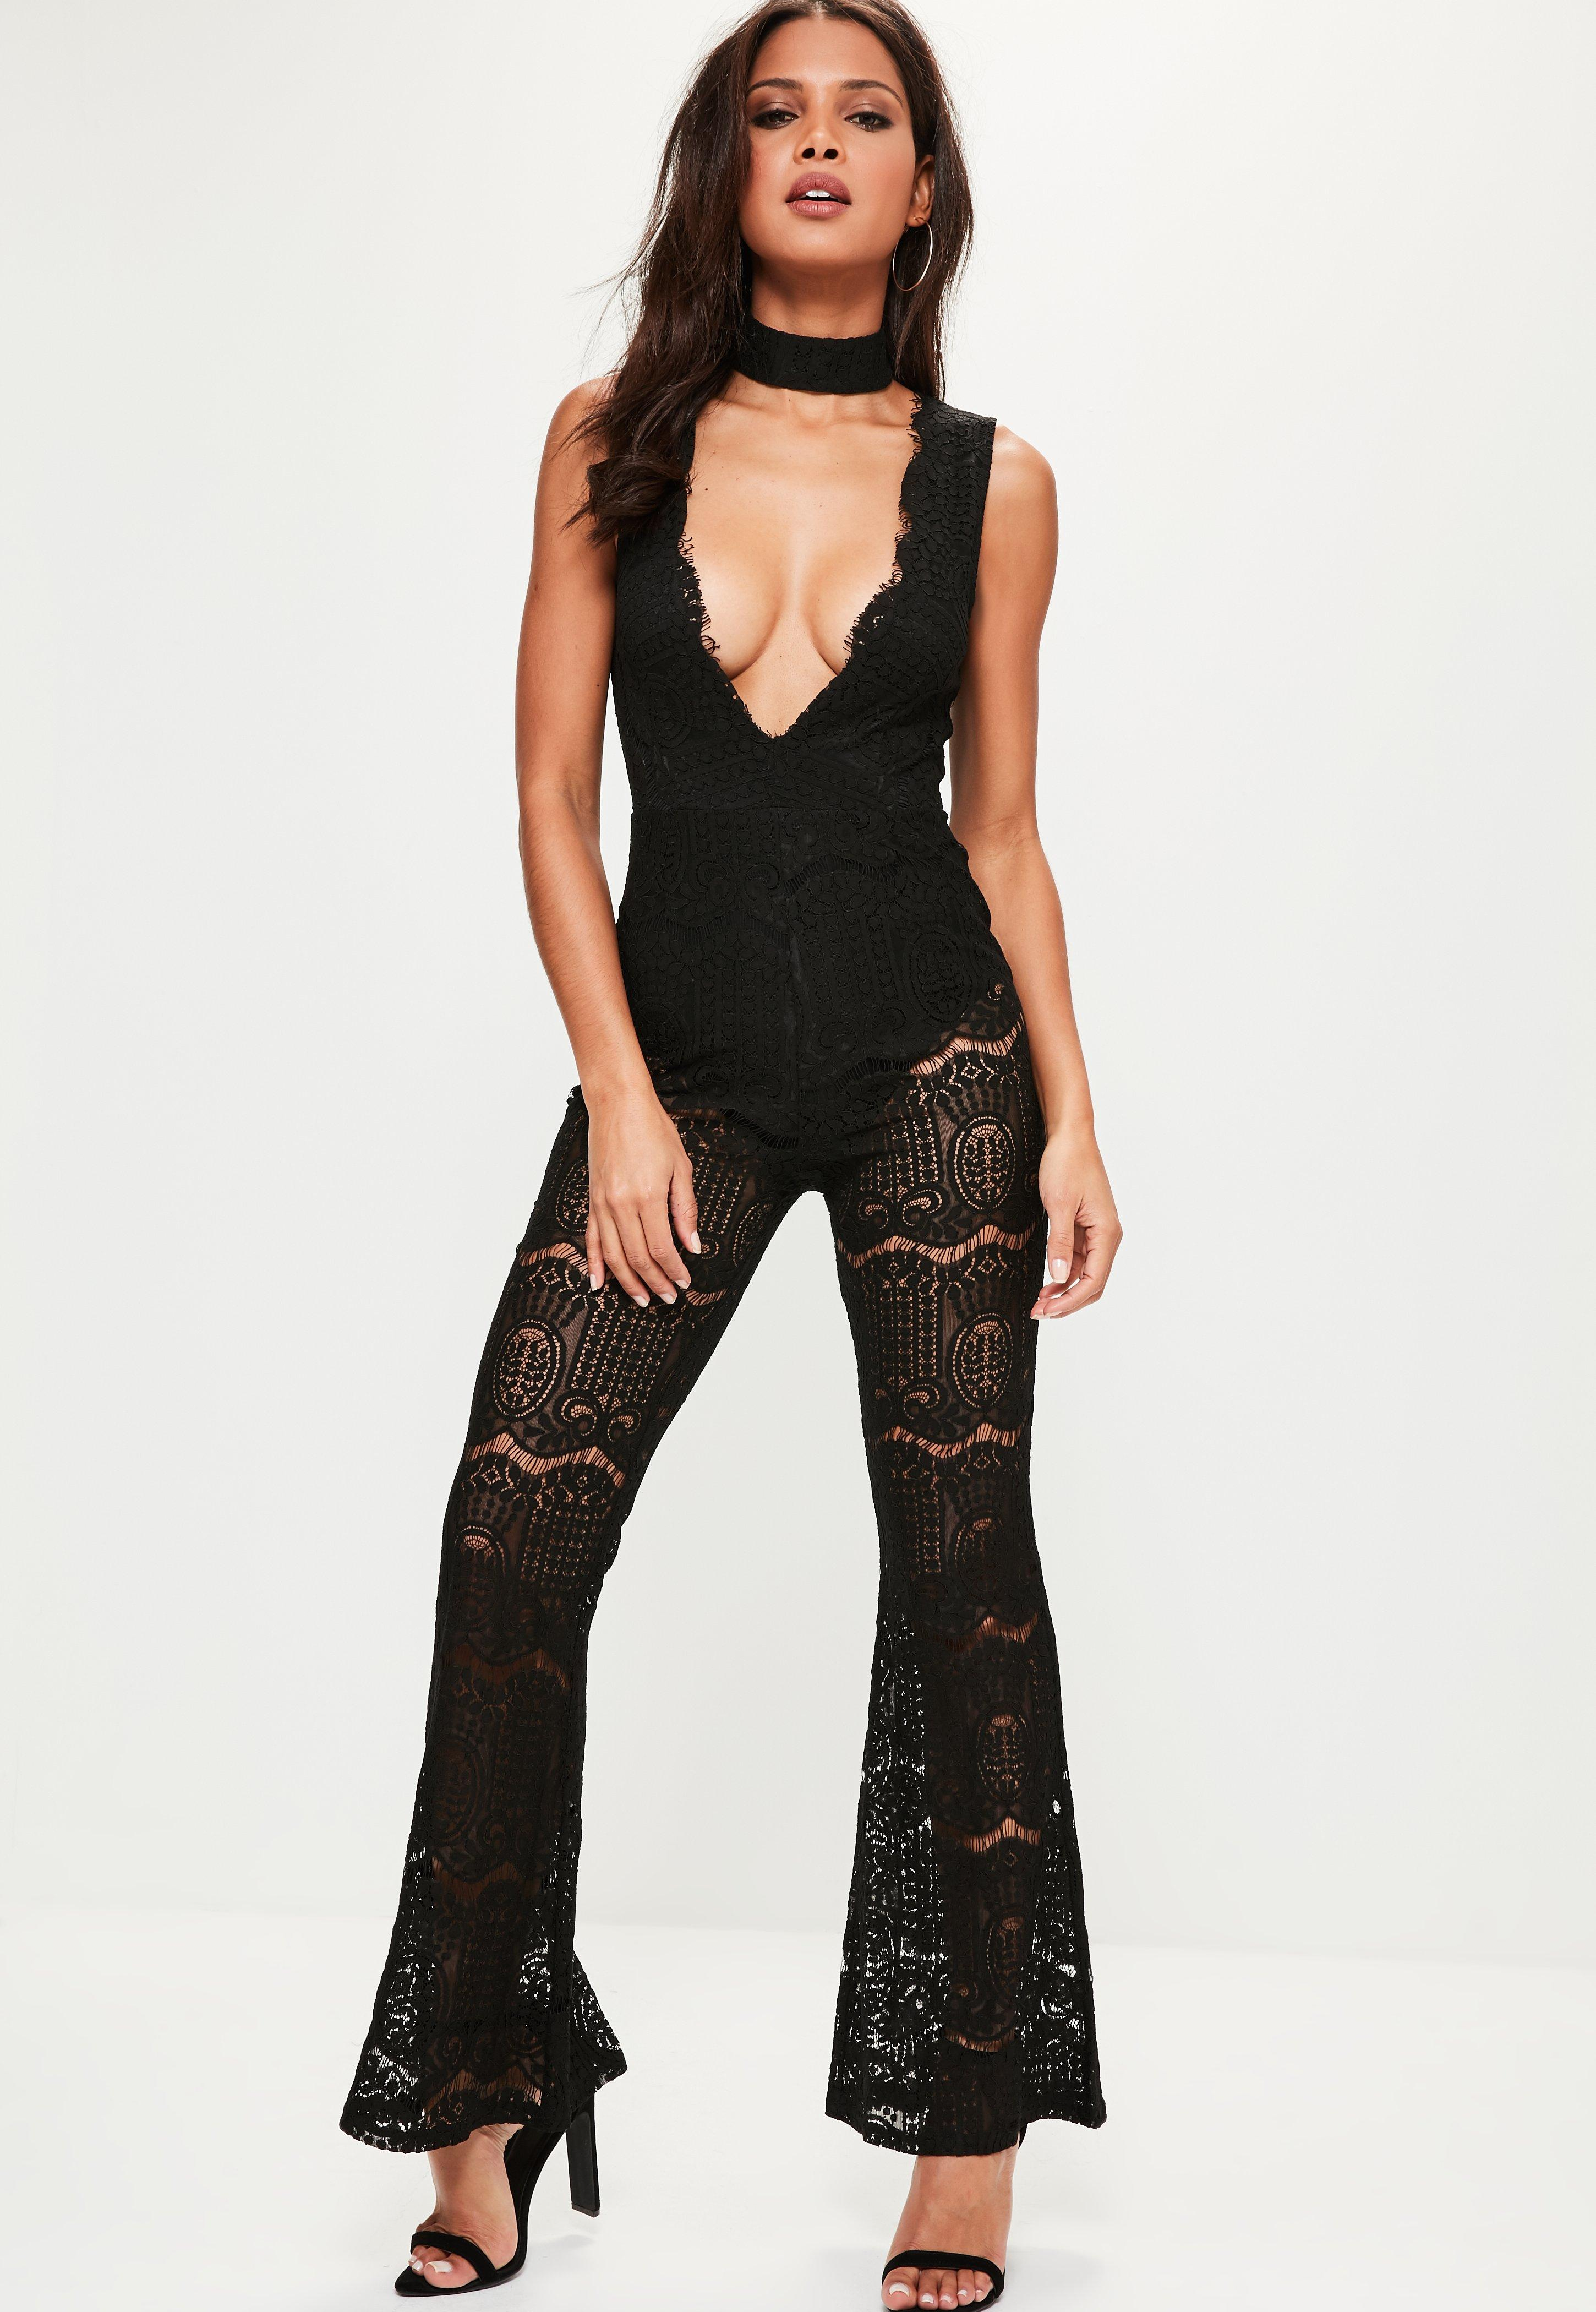 Missguided Plunge Lace Playsuit Sale With Credit Card Free Shipping Cheapest Price 0GtdVRcbtW